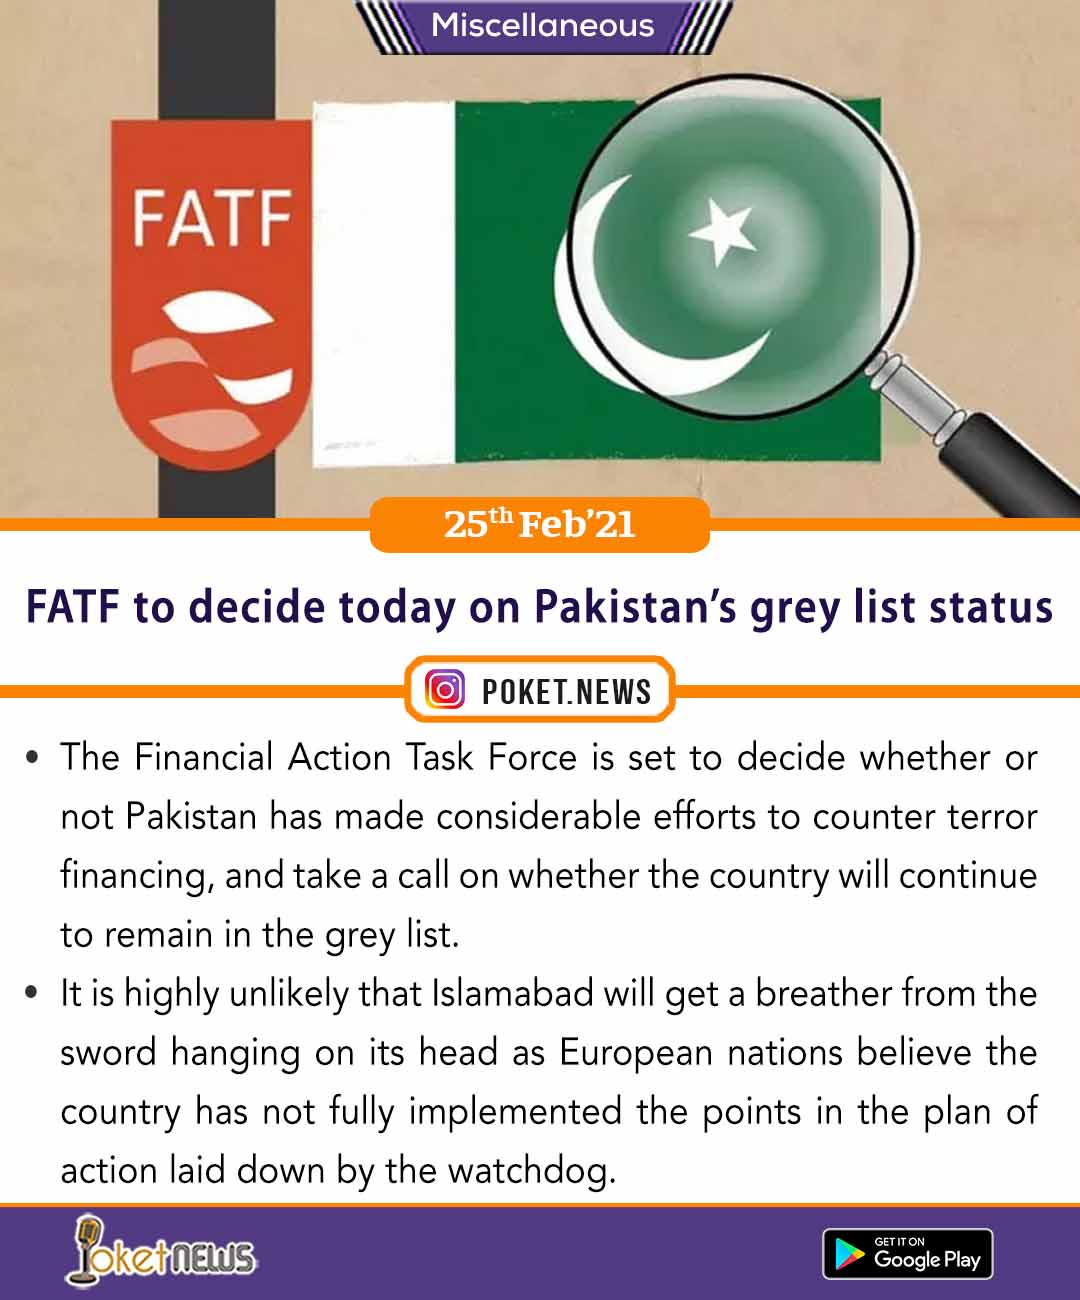 FATF to decide today on Pakistan's grey list status